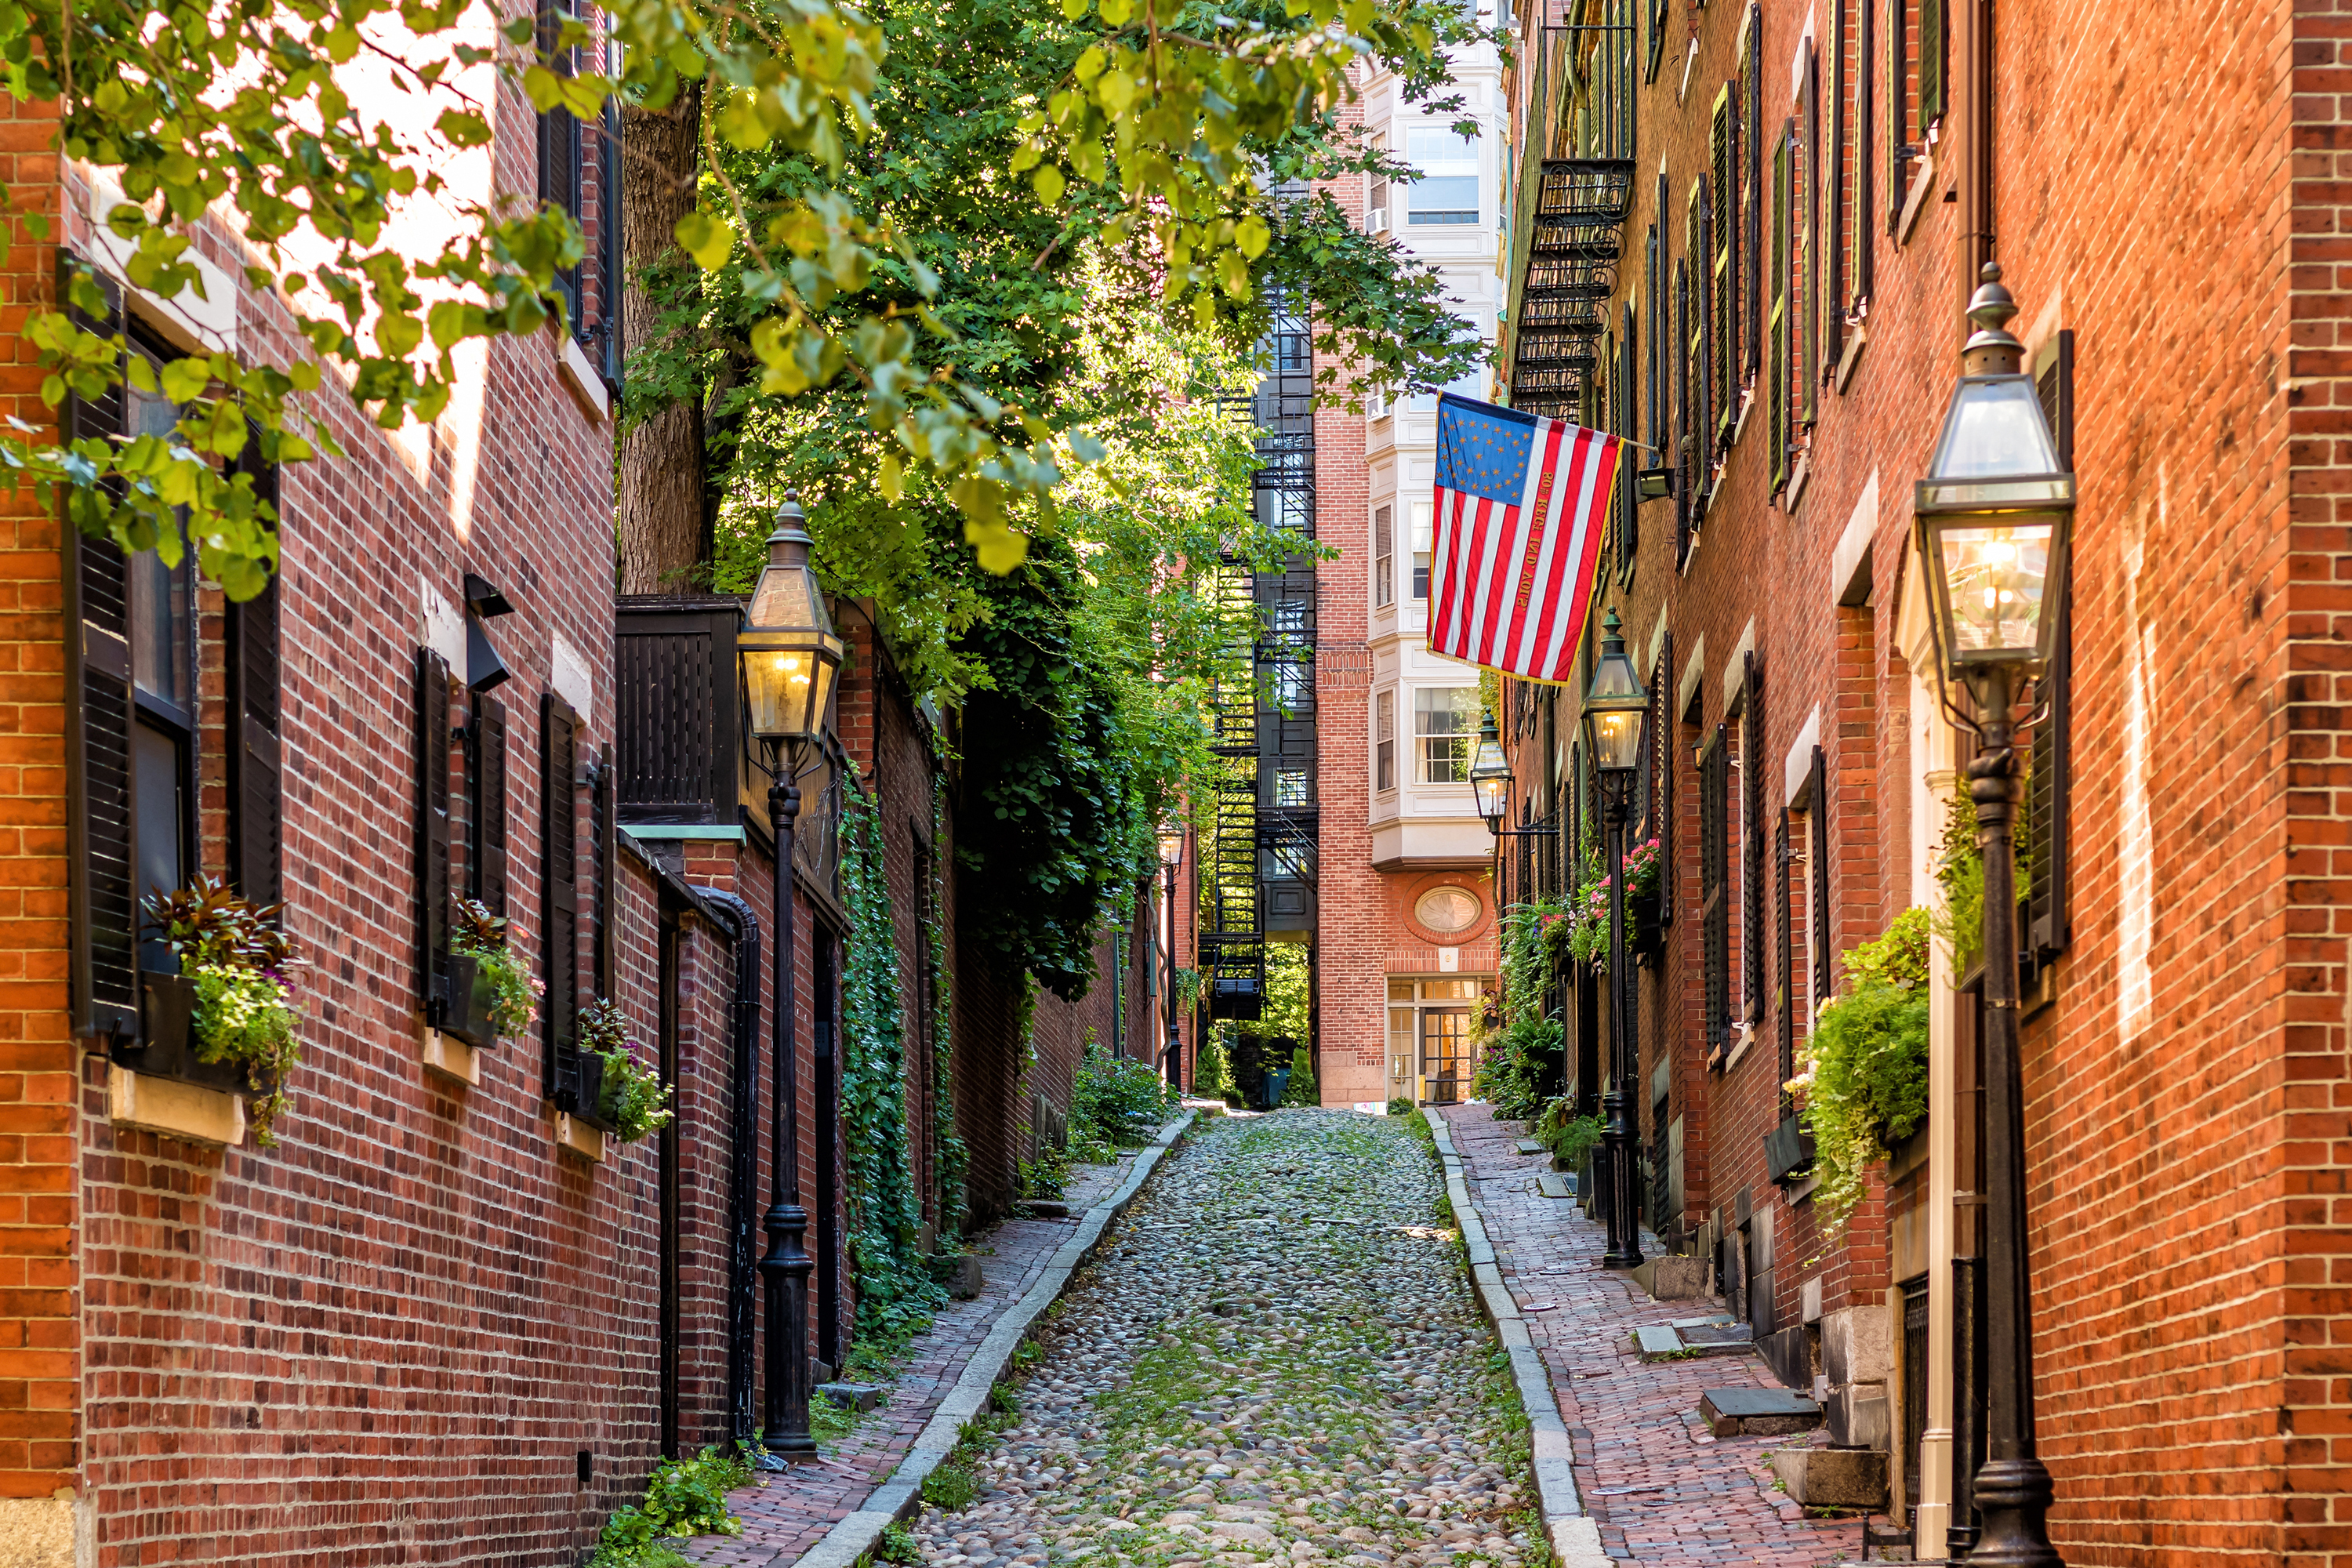 A narrow cobblestone street going uphill and there are townhouses on either side.